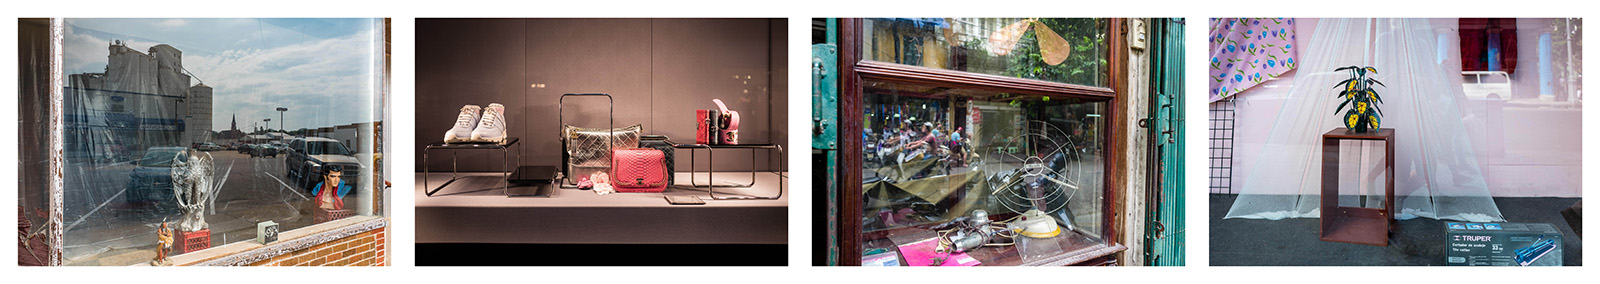 Shop windows. Iowa 2017, Paris 2018, Hanoi 2016, Havana 2017